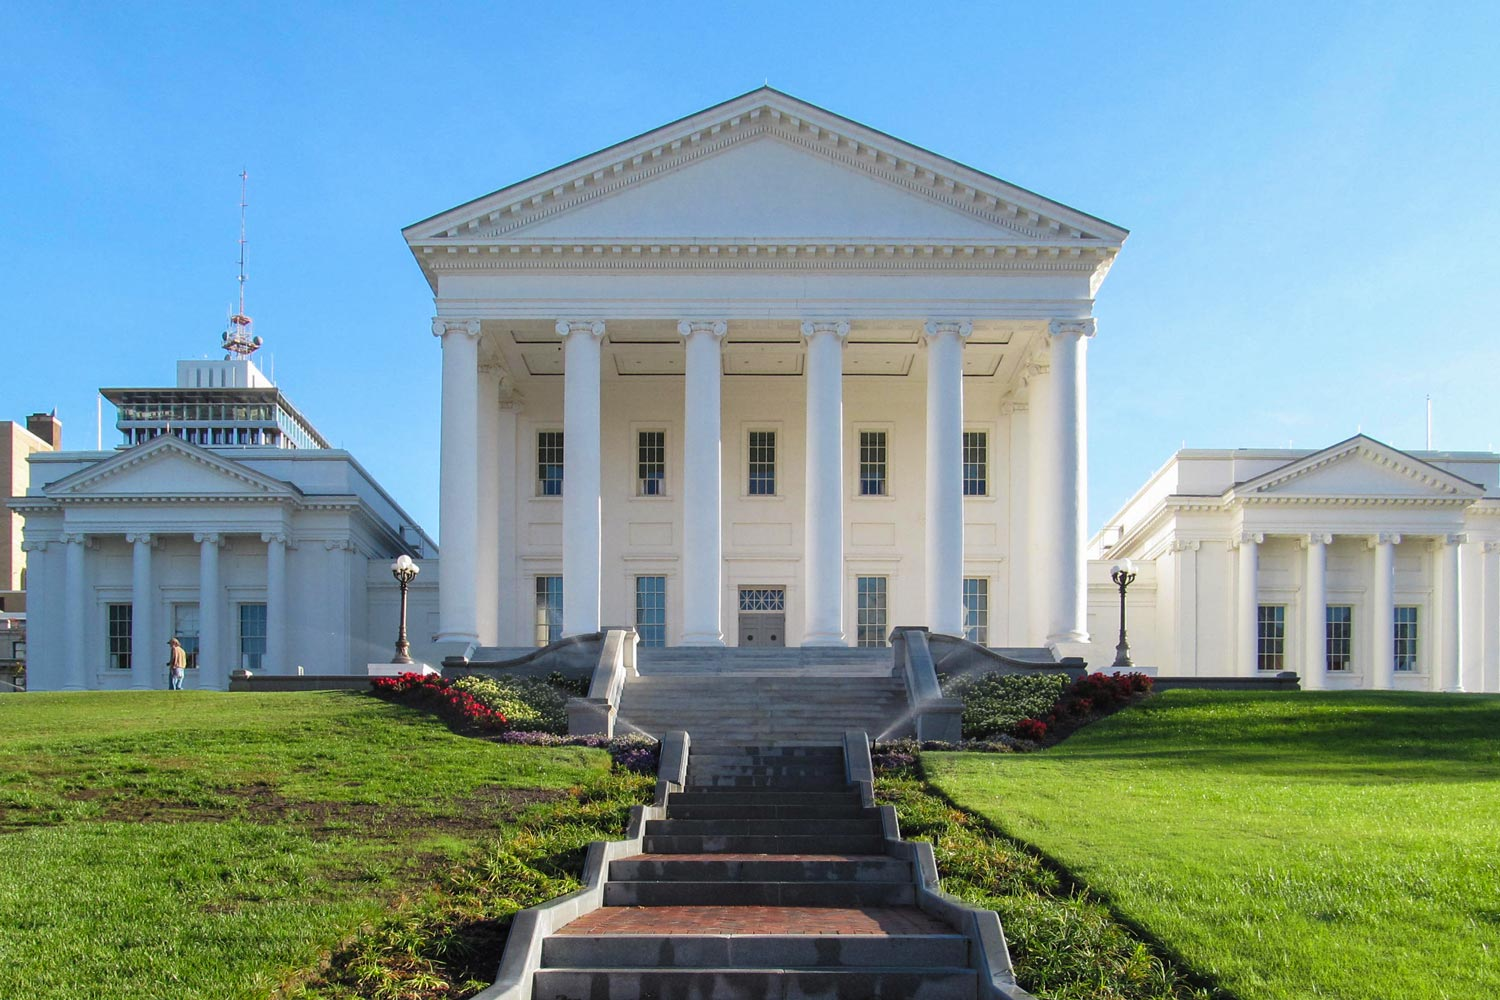 Jefferson modeled the Virginia State Capitol after a favorite classical temple in France.